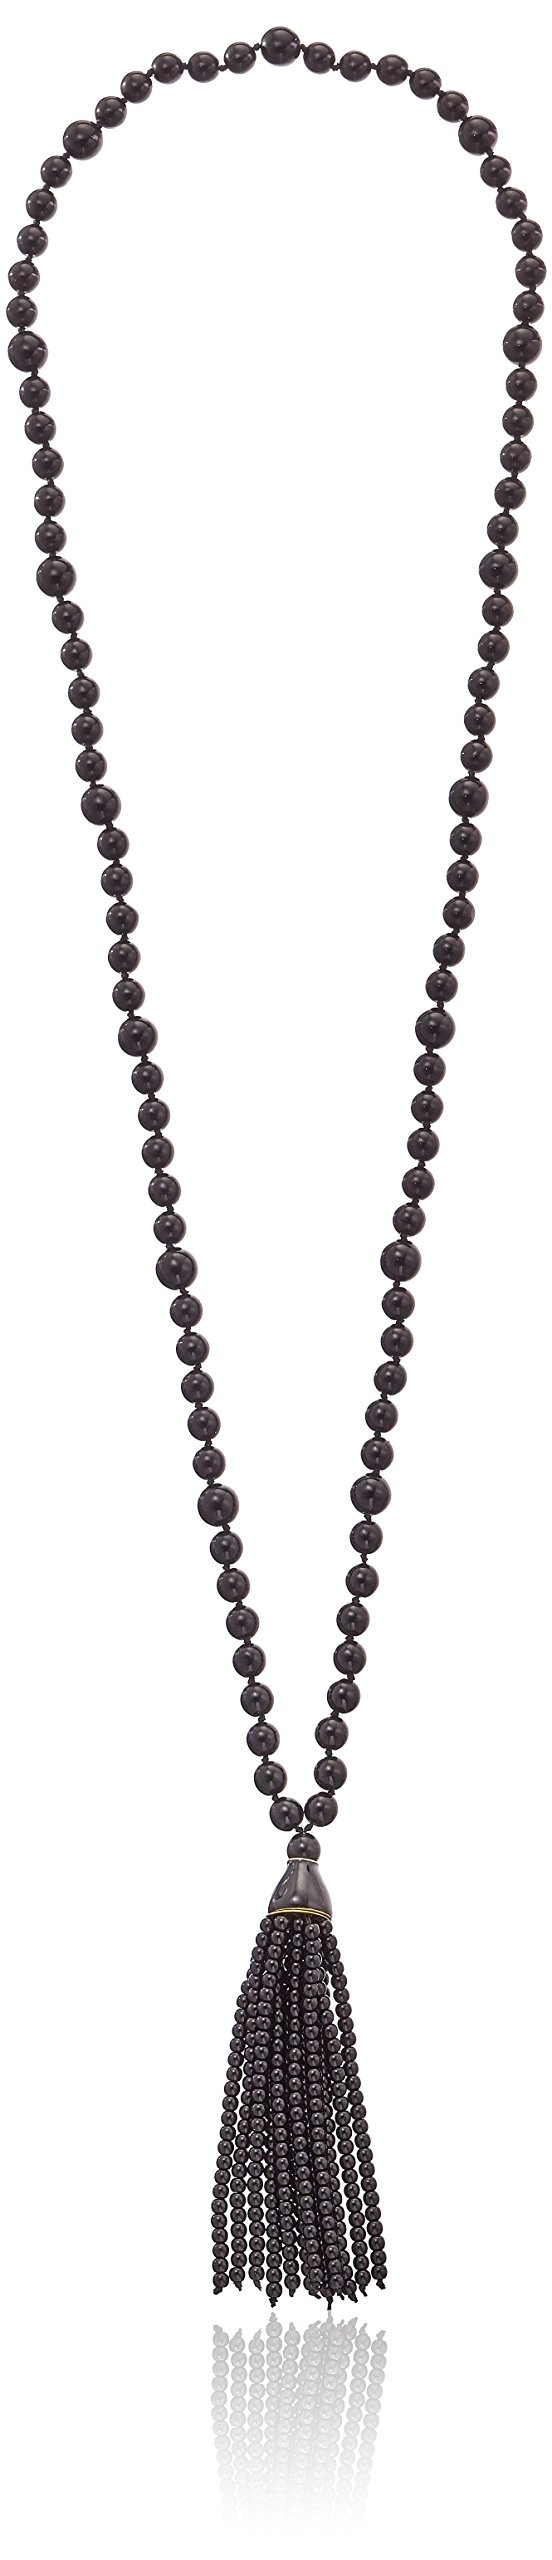 Kenneth Jay Lane Black Bead and Tassel Necklace, 30''